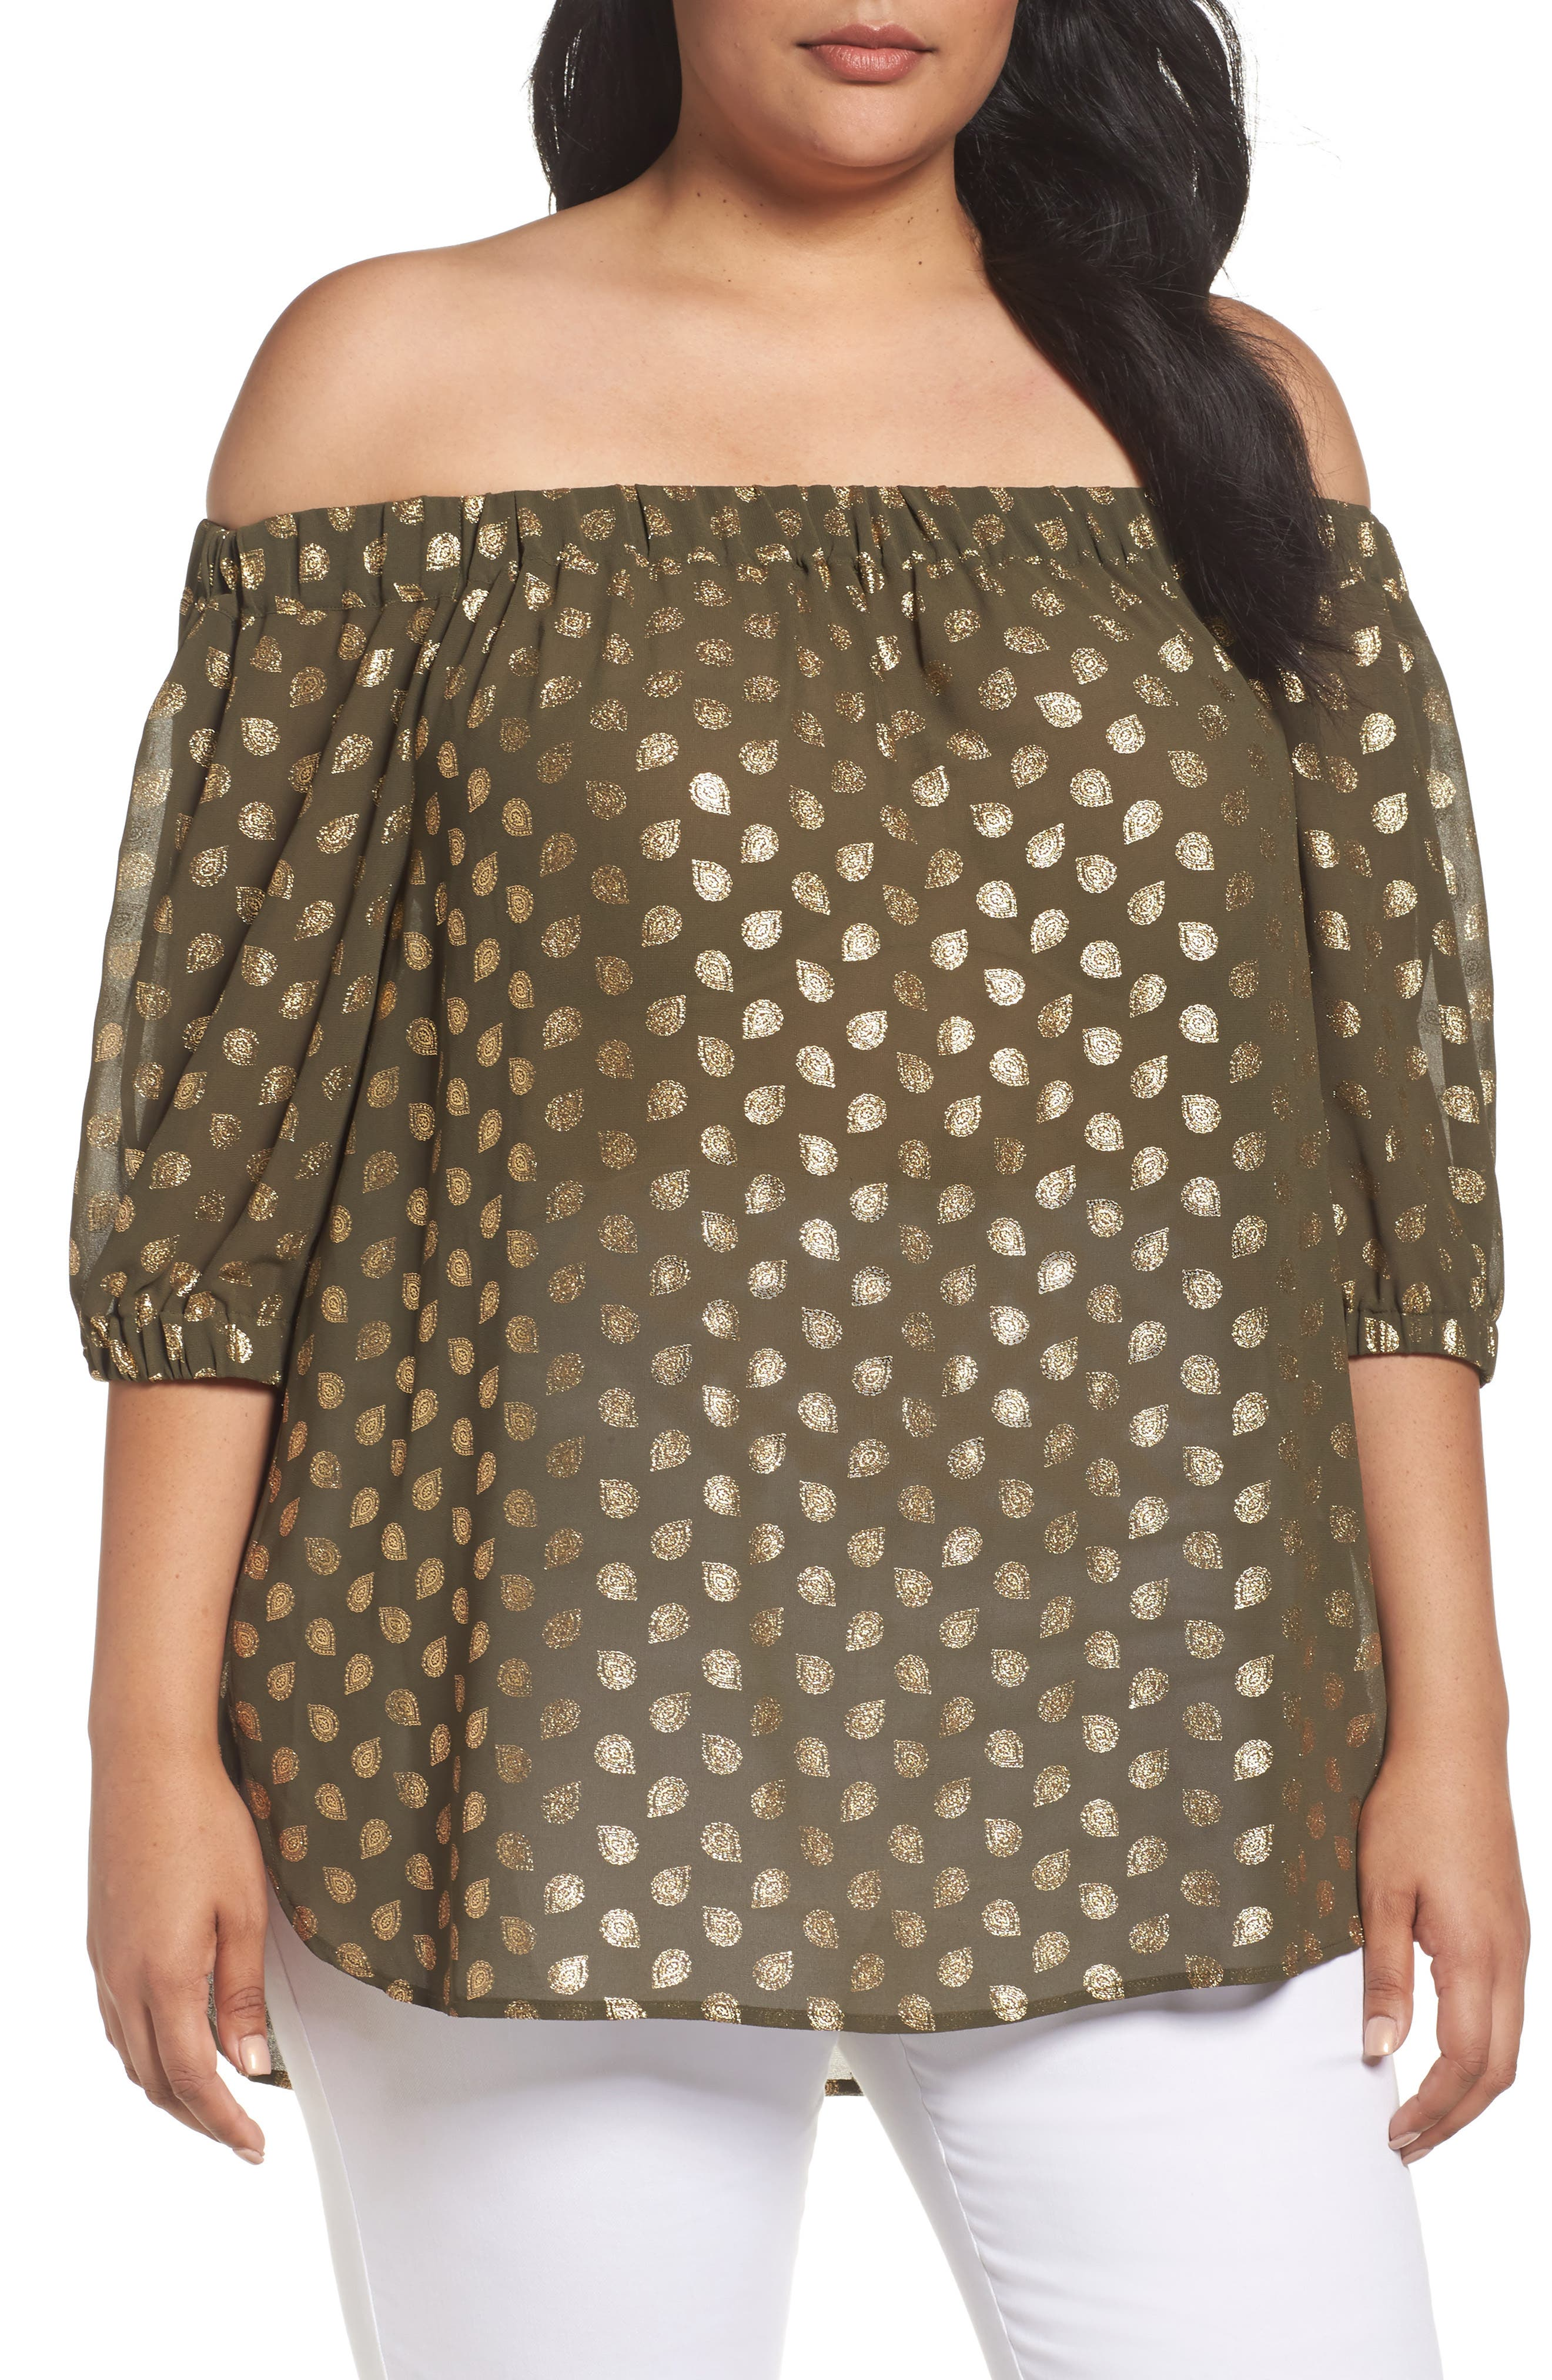 MICHAEL Michael Kors Bergalia Foiled Print Off the Shoulder Top (Plus Size)